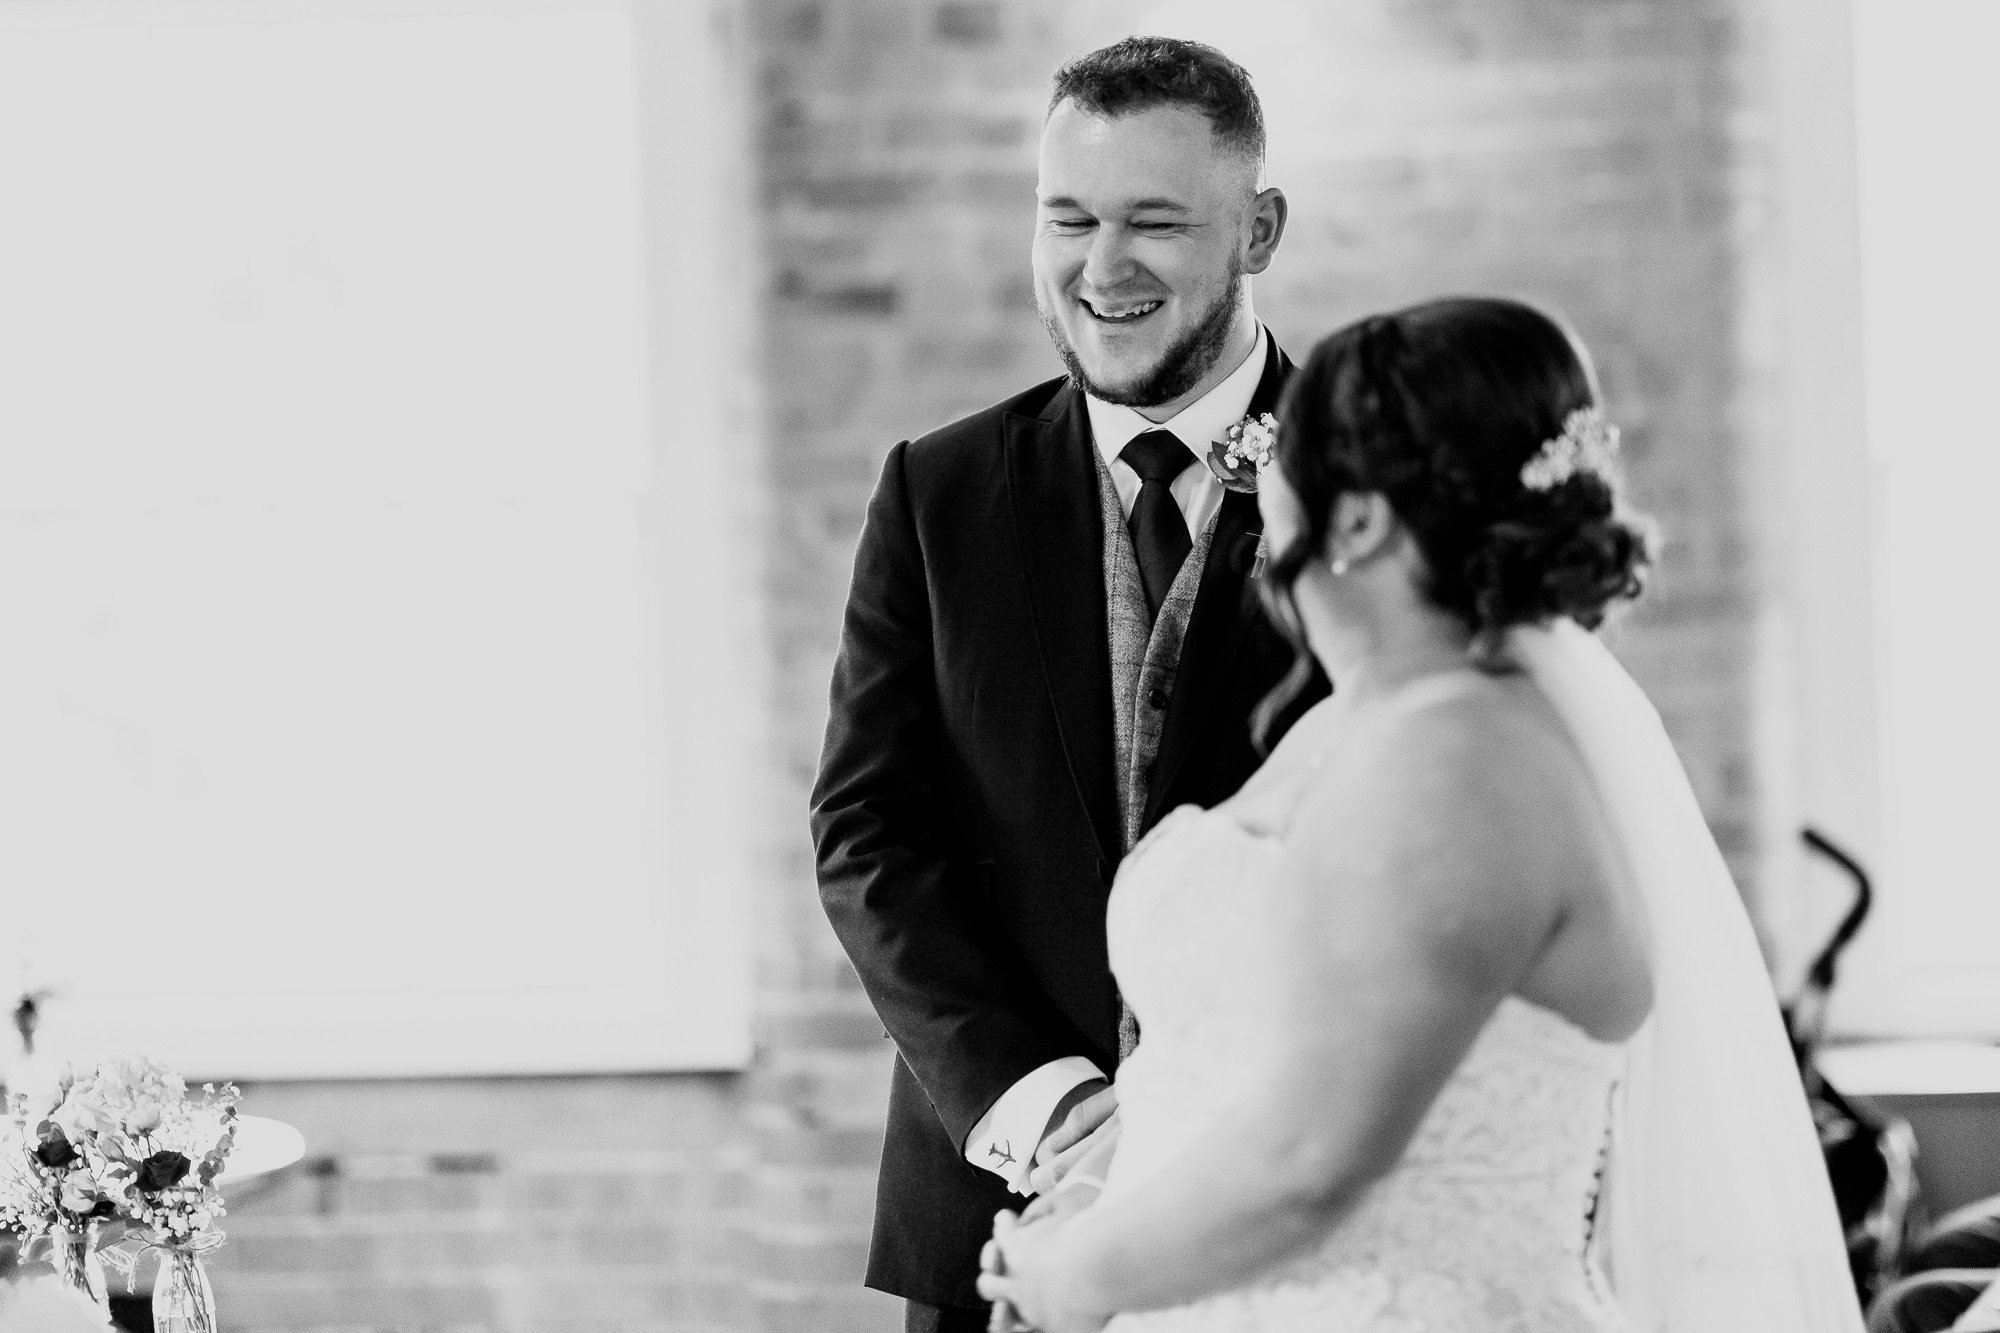 Groom laughing during wedding ceremony at the West Mill